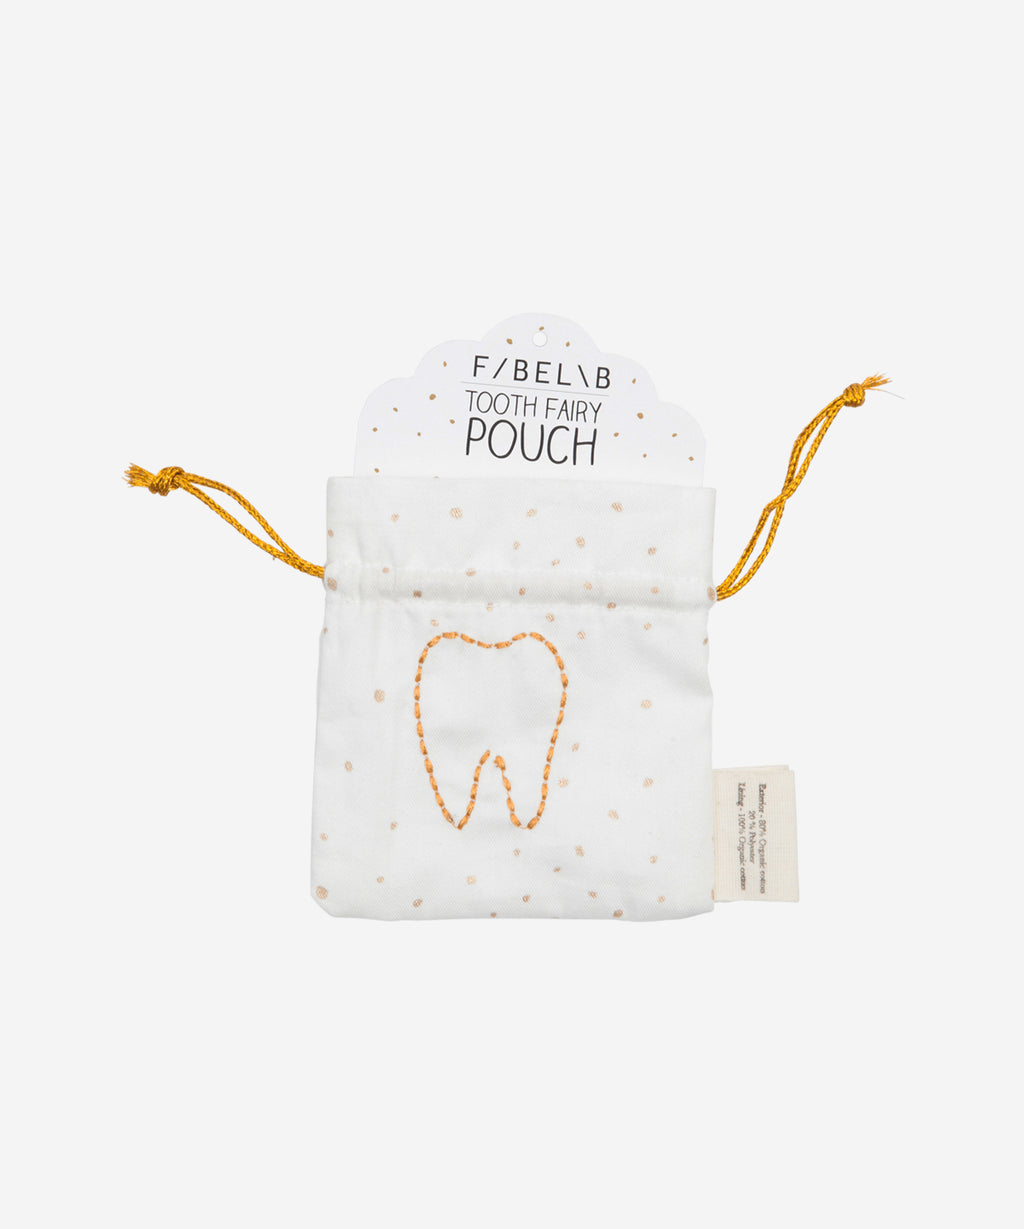 Fabelab - Tooth Fairy Pouch